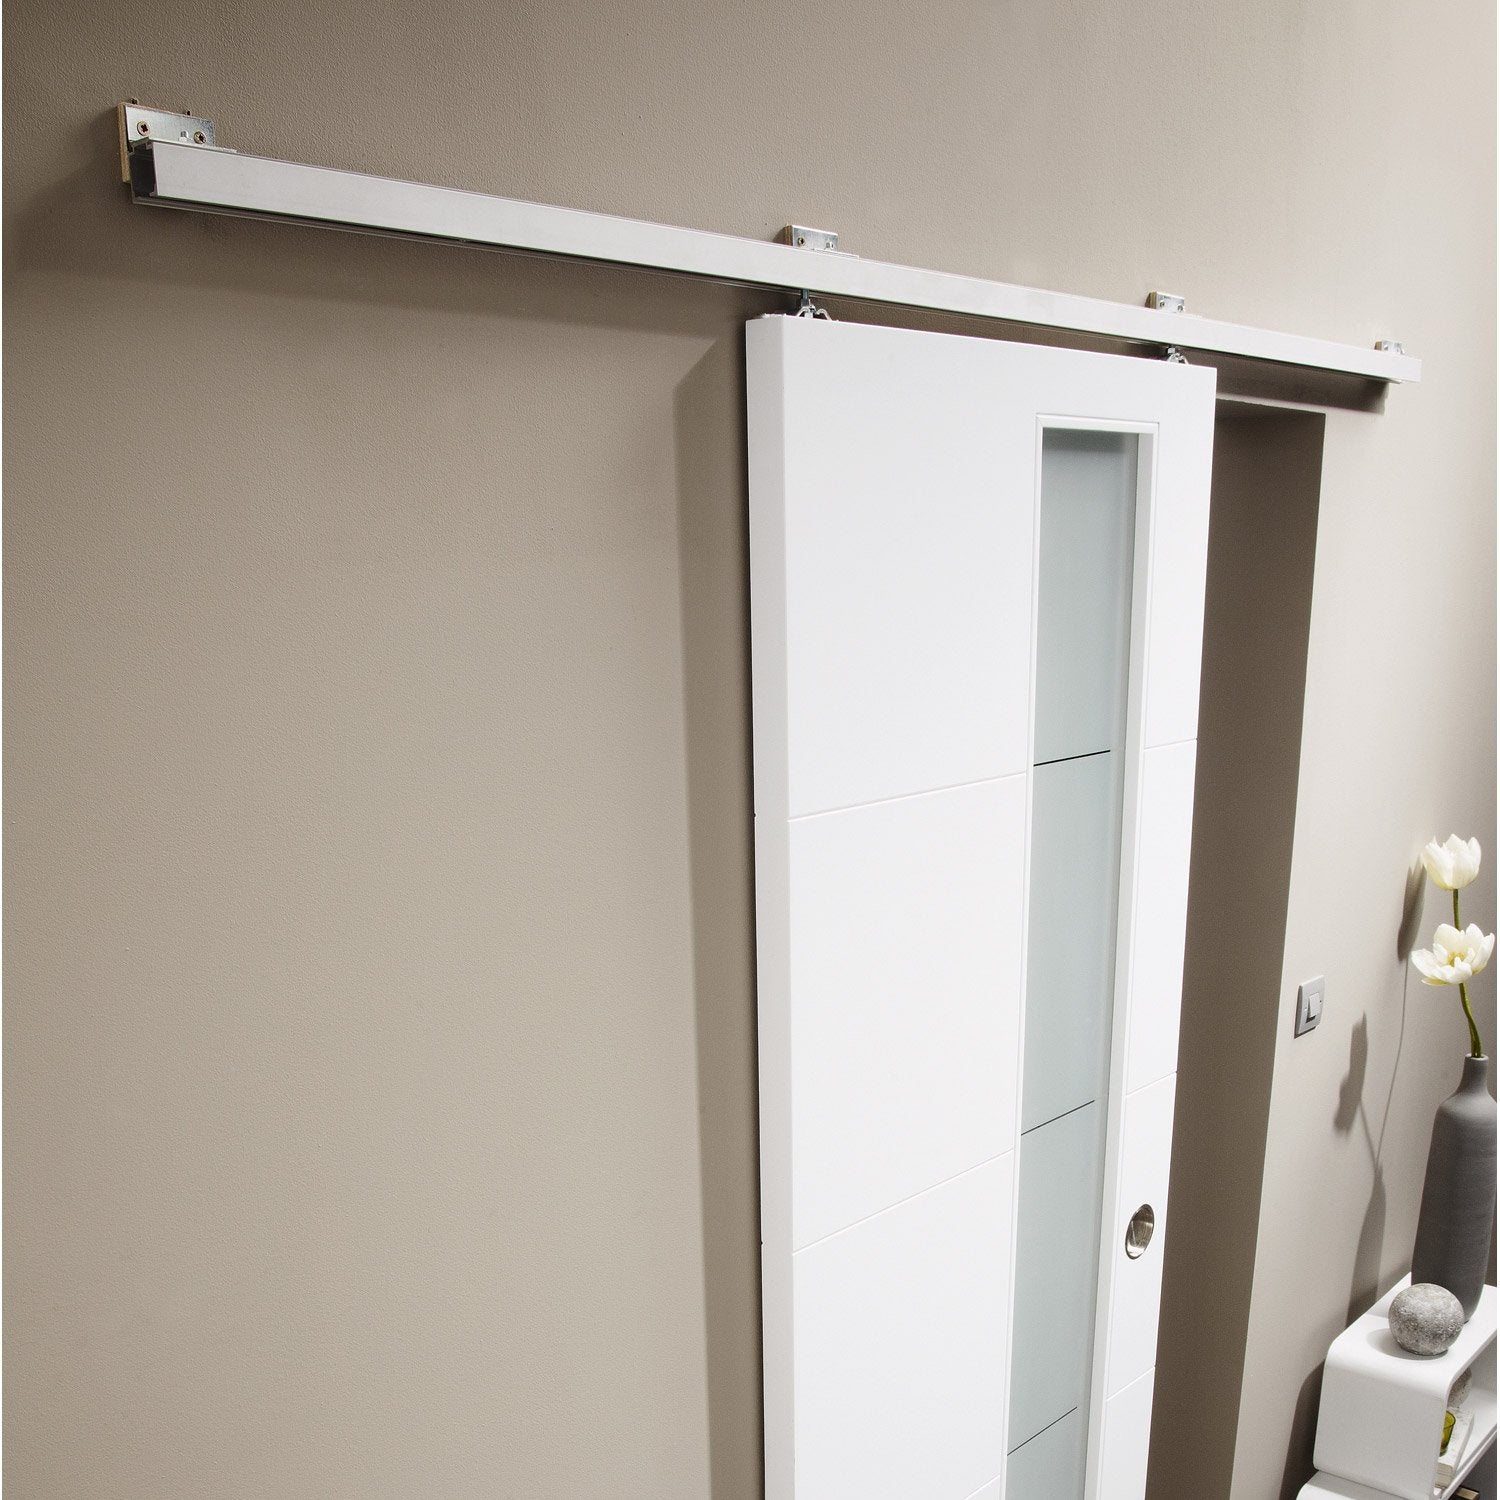 Rail coulissant turbo 2 pour porte de largeur 93 cm for Porte scorrevoli esterno muro leroy merlin